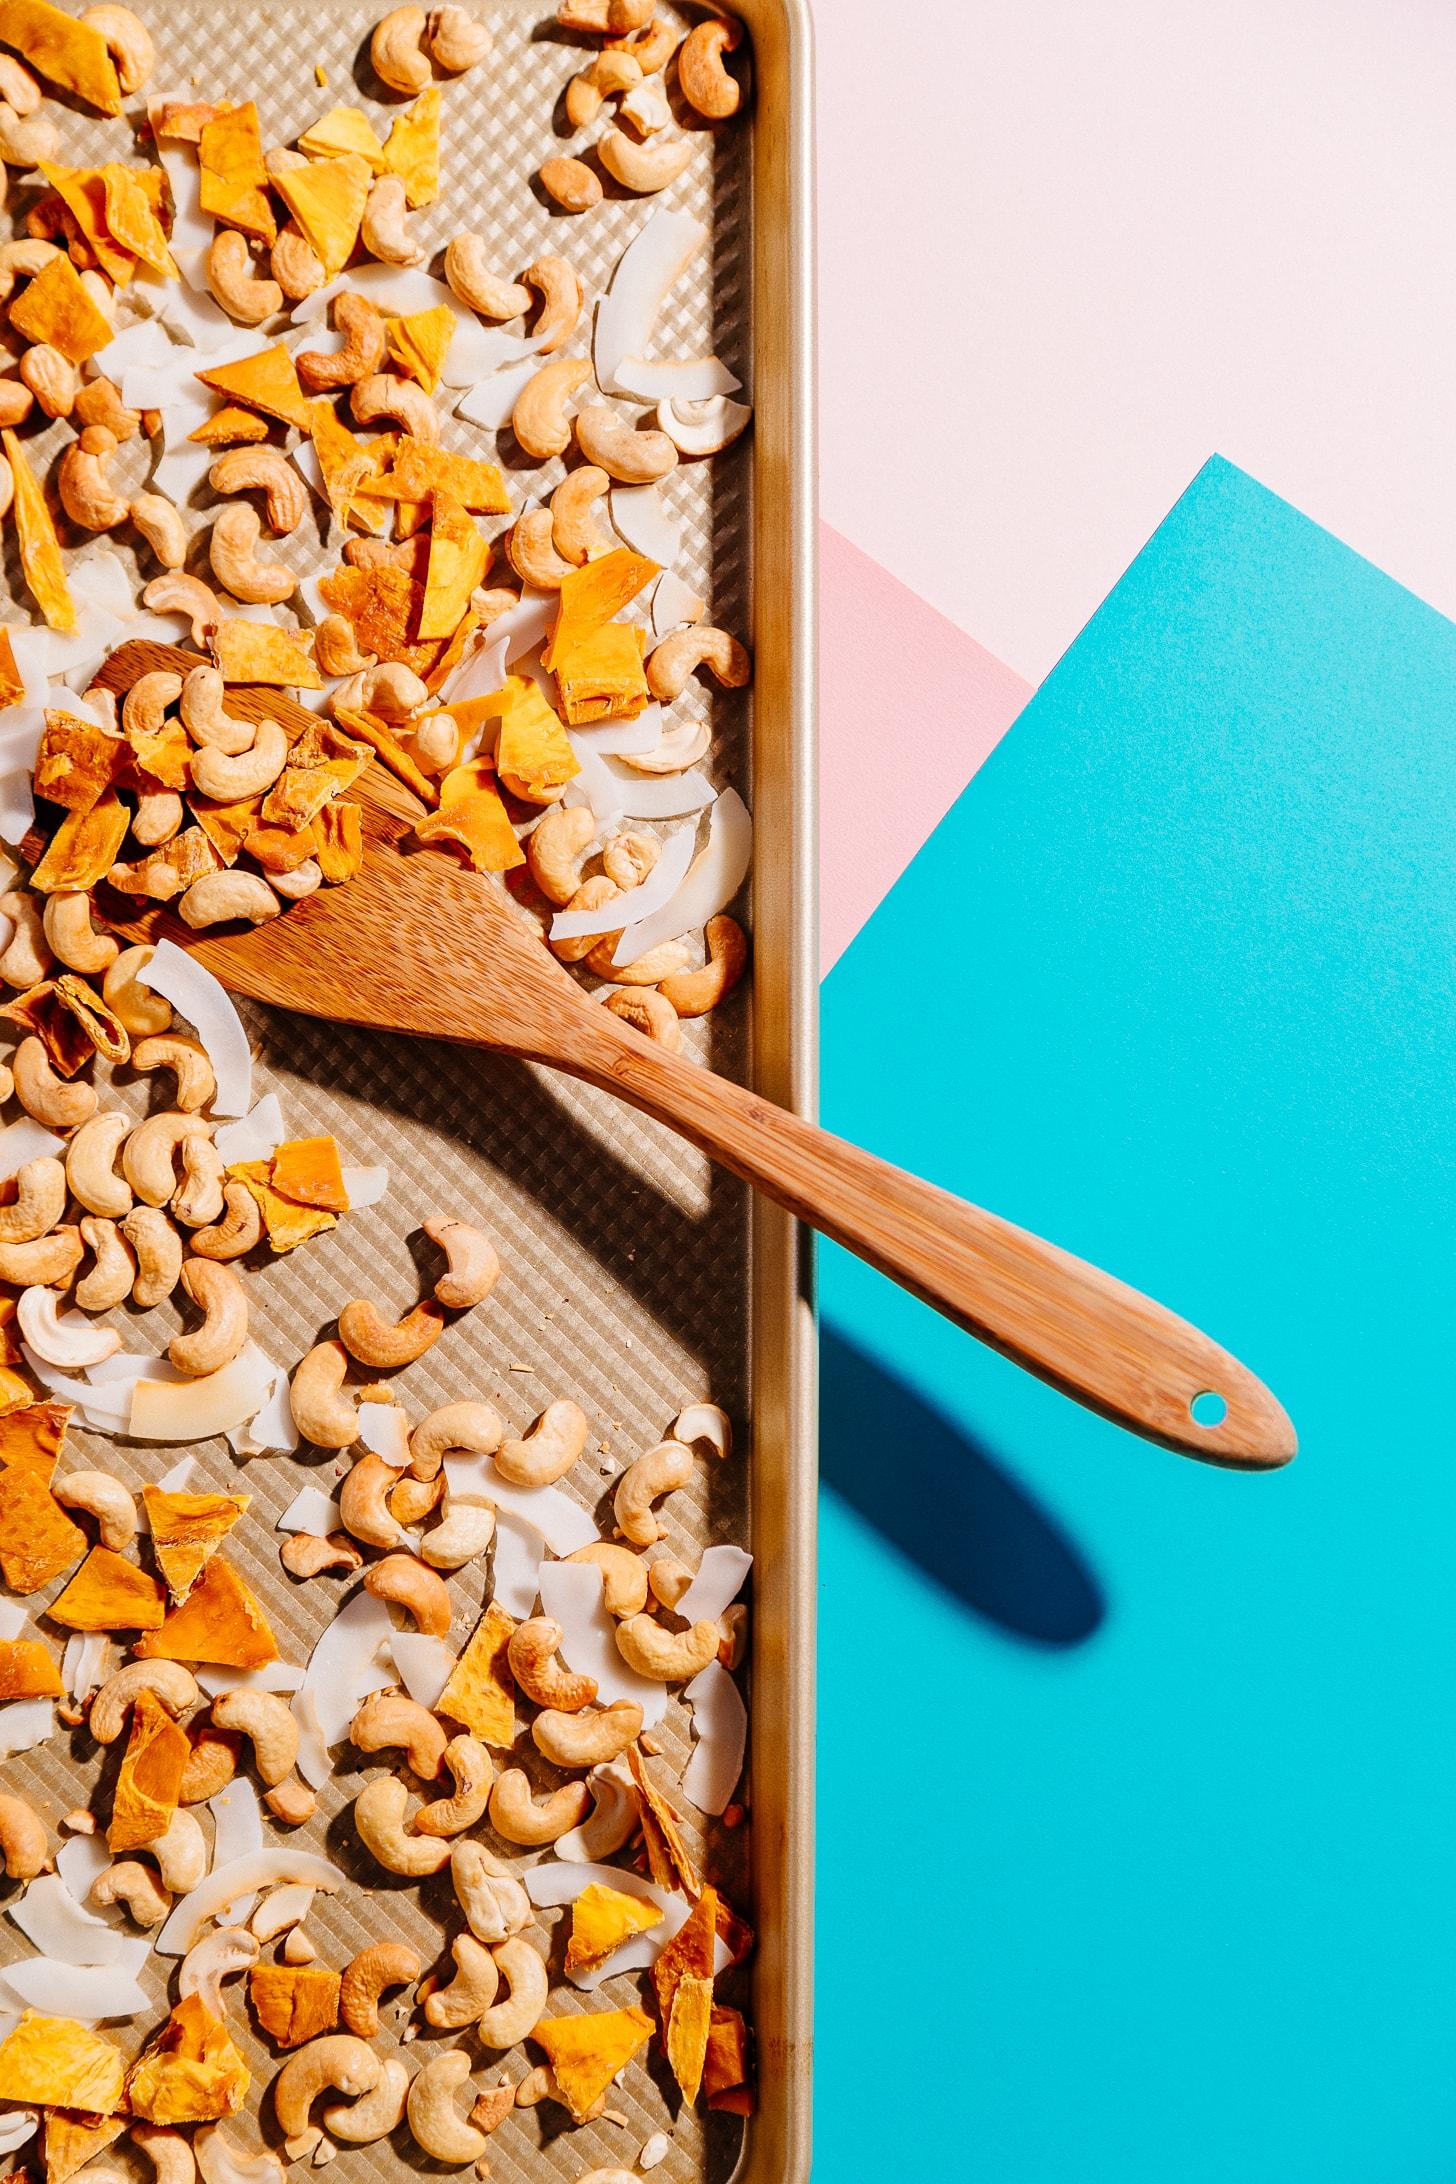 Wooden spoon resting on a baking sheet of healthy homemade Tropical Trail Mix